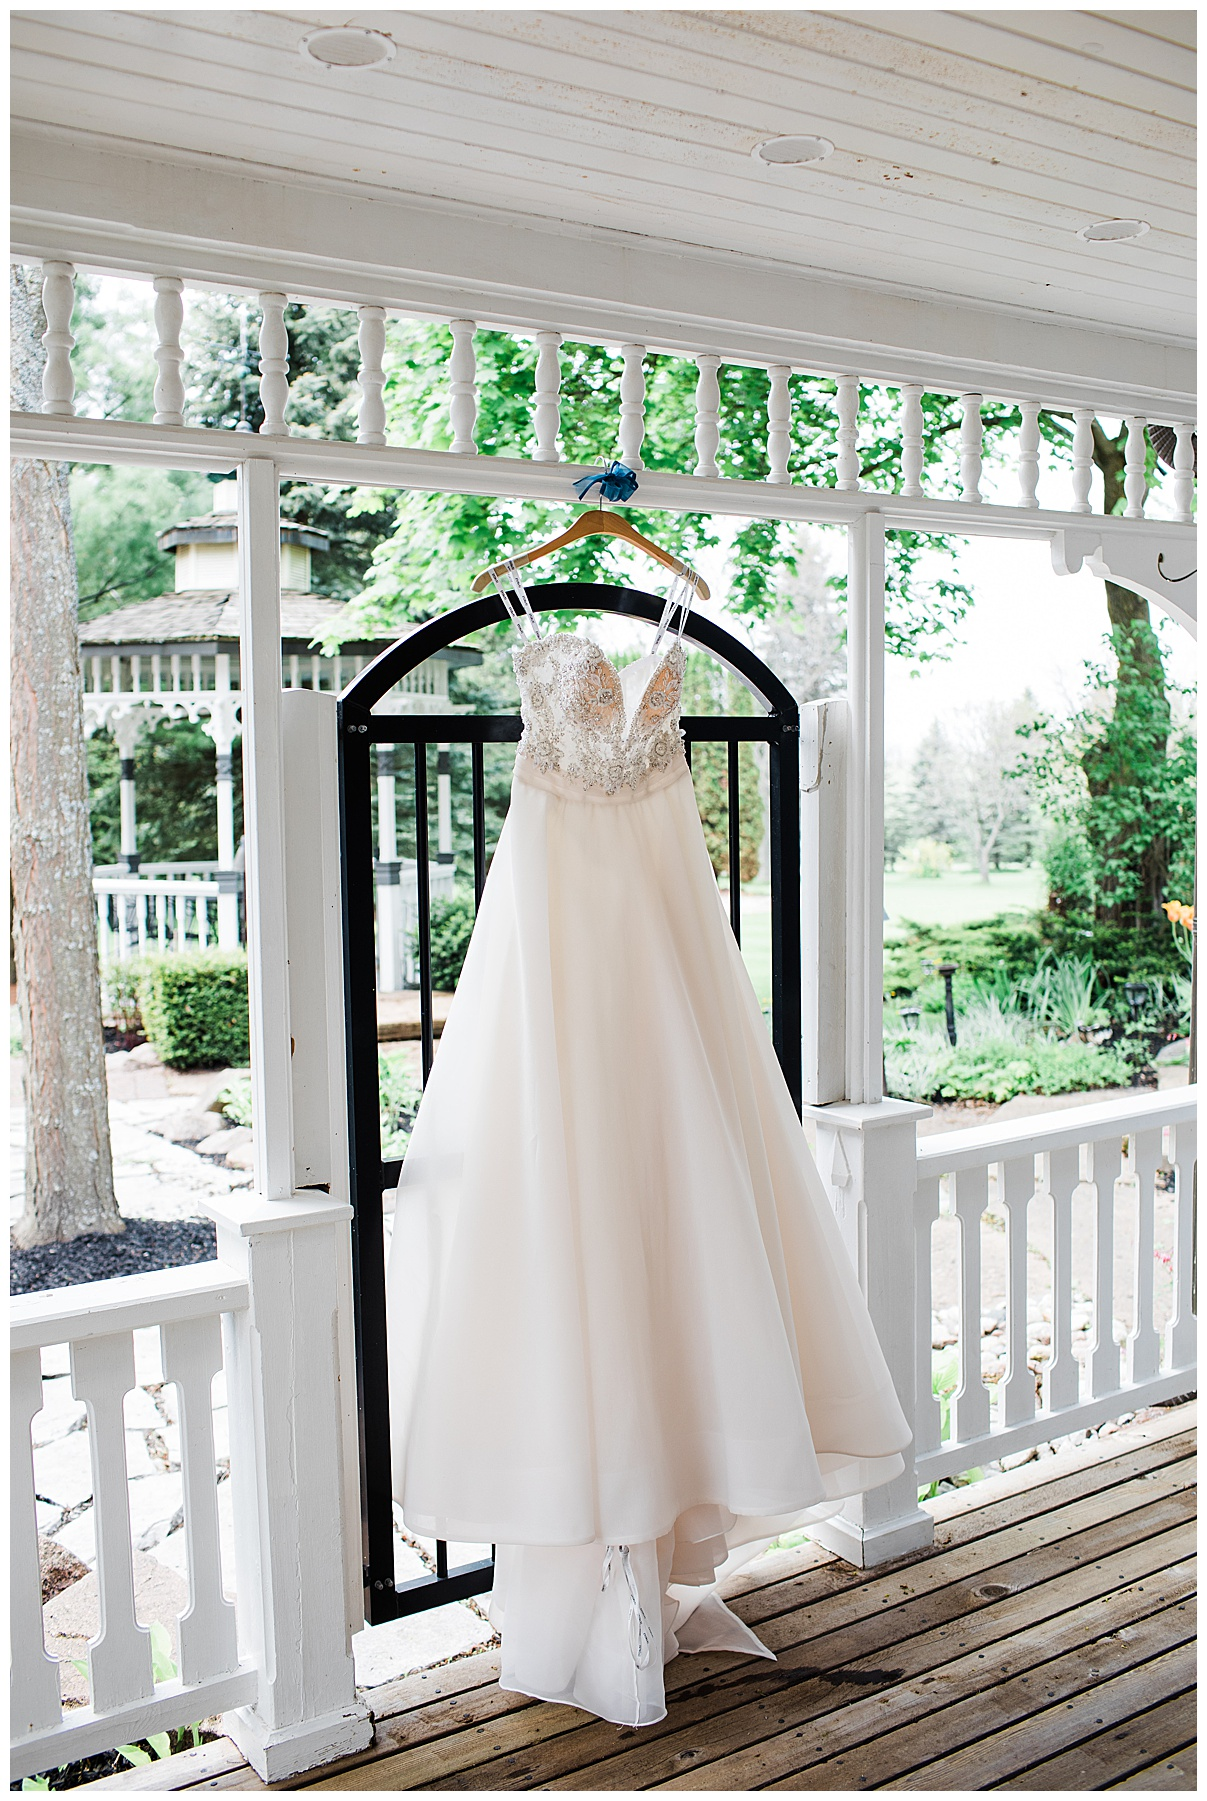 Wedding gown hanging outside| Belcroft Estate Wedding| Toronto wedding photographer| Ontario wedding photographer| 3photography